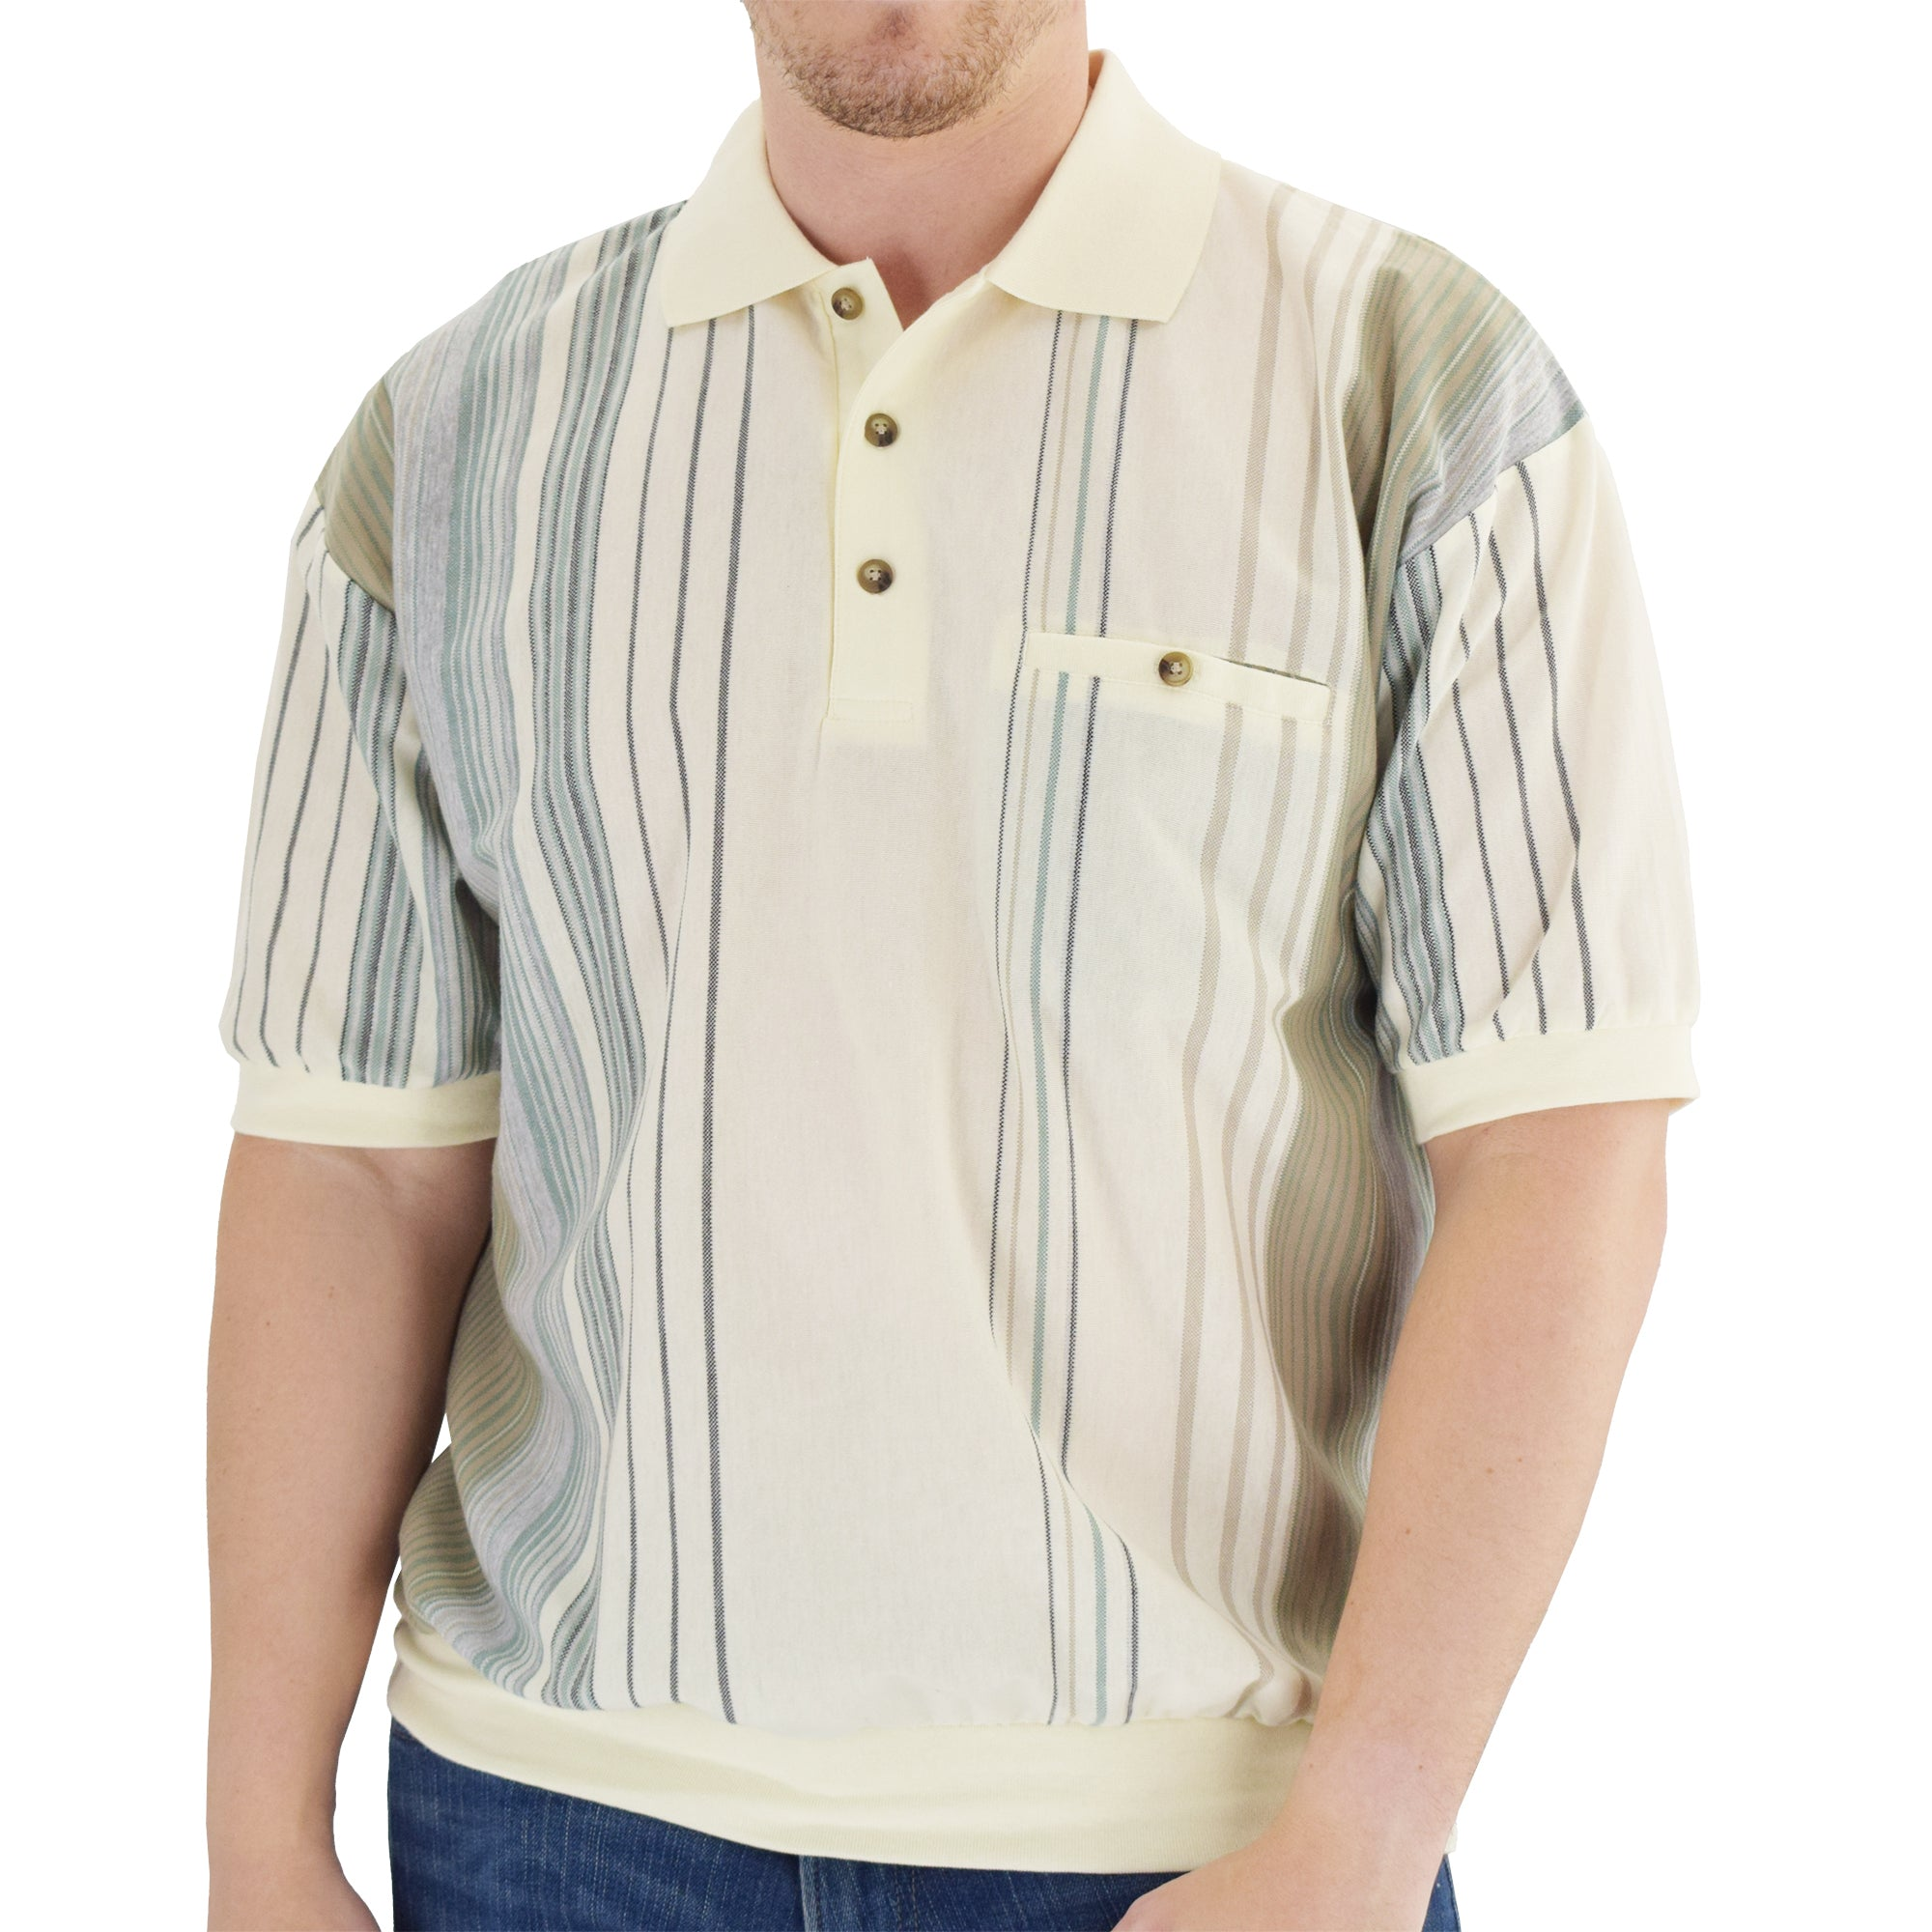 Classics by Palmland Short Sleeve Polo Shirt Big and Tall 6090-V2 - Natural - theflagshirt